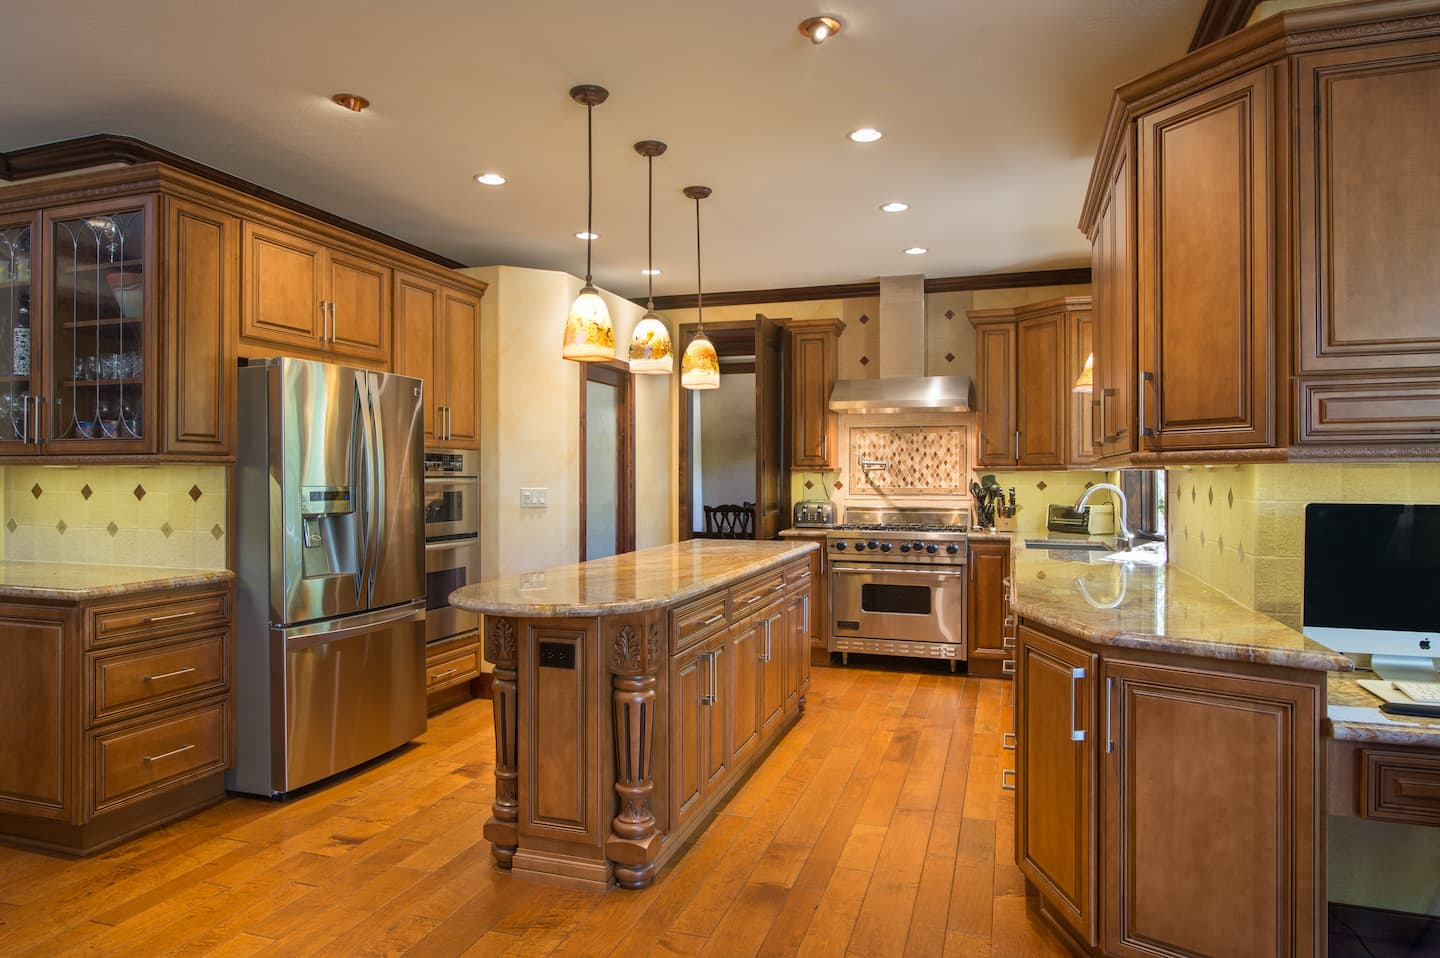 Small Kitchen Island Ideas | Angie's List on drywall garage, drywall basement, drywall fireplace, drywall entertainment center, drywall crown molding,